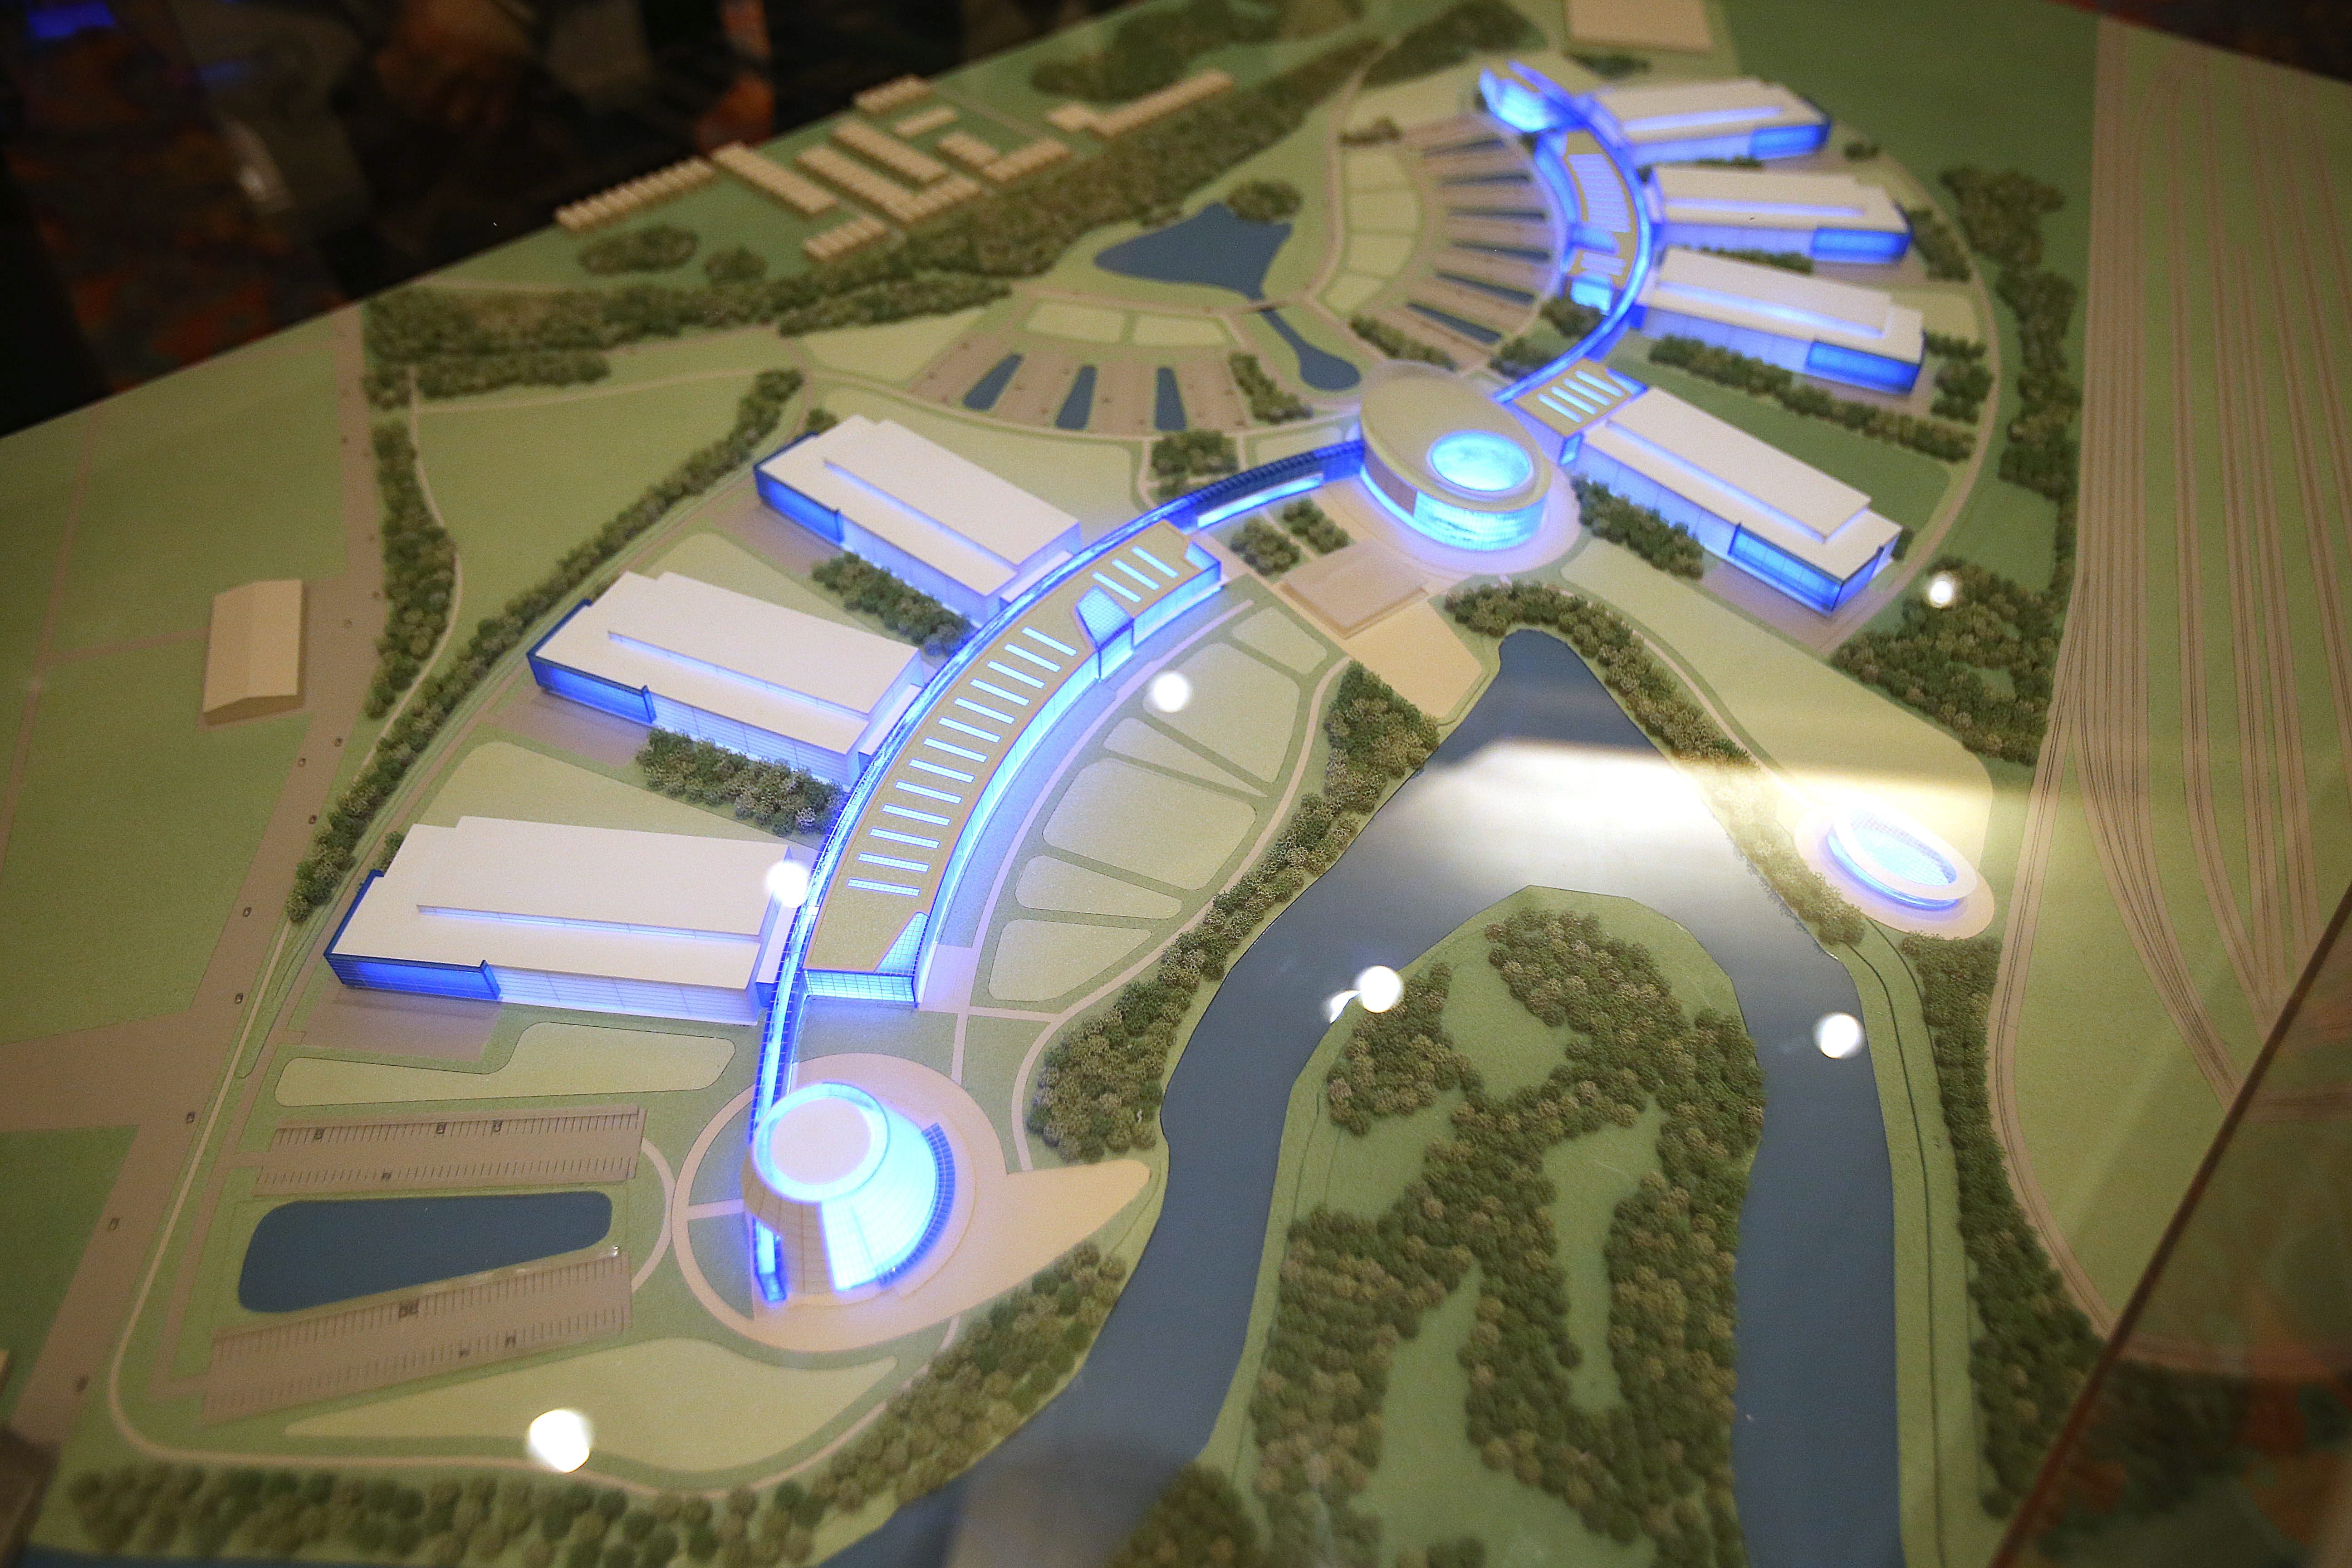 """A 3D model of the """"River Bend Project"""" shows what Gov. Andrew M. Cuomo's """"Buffalo billion"""" is scheduled to produce along the Buffalo River."""